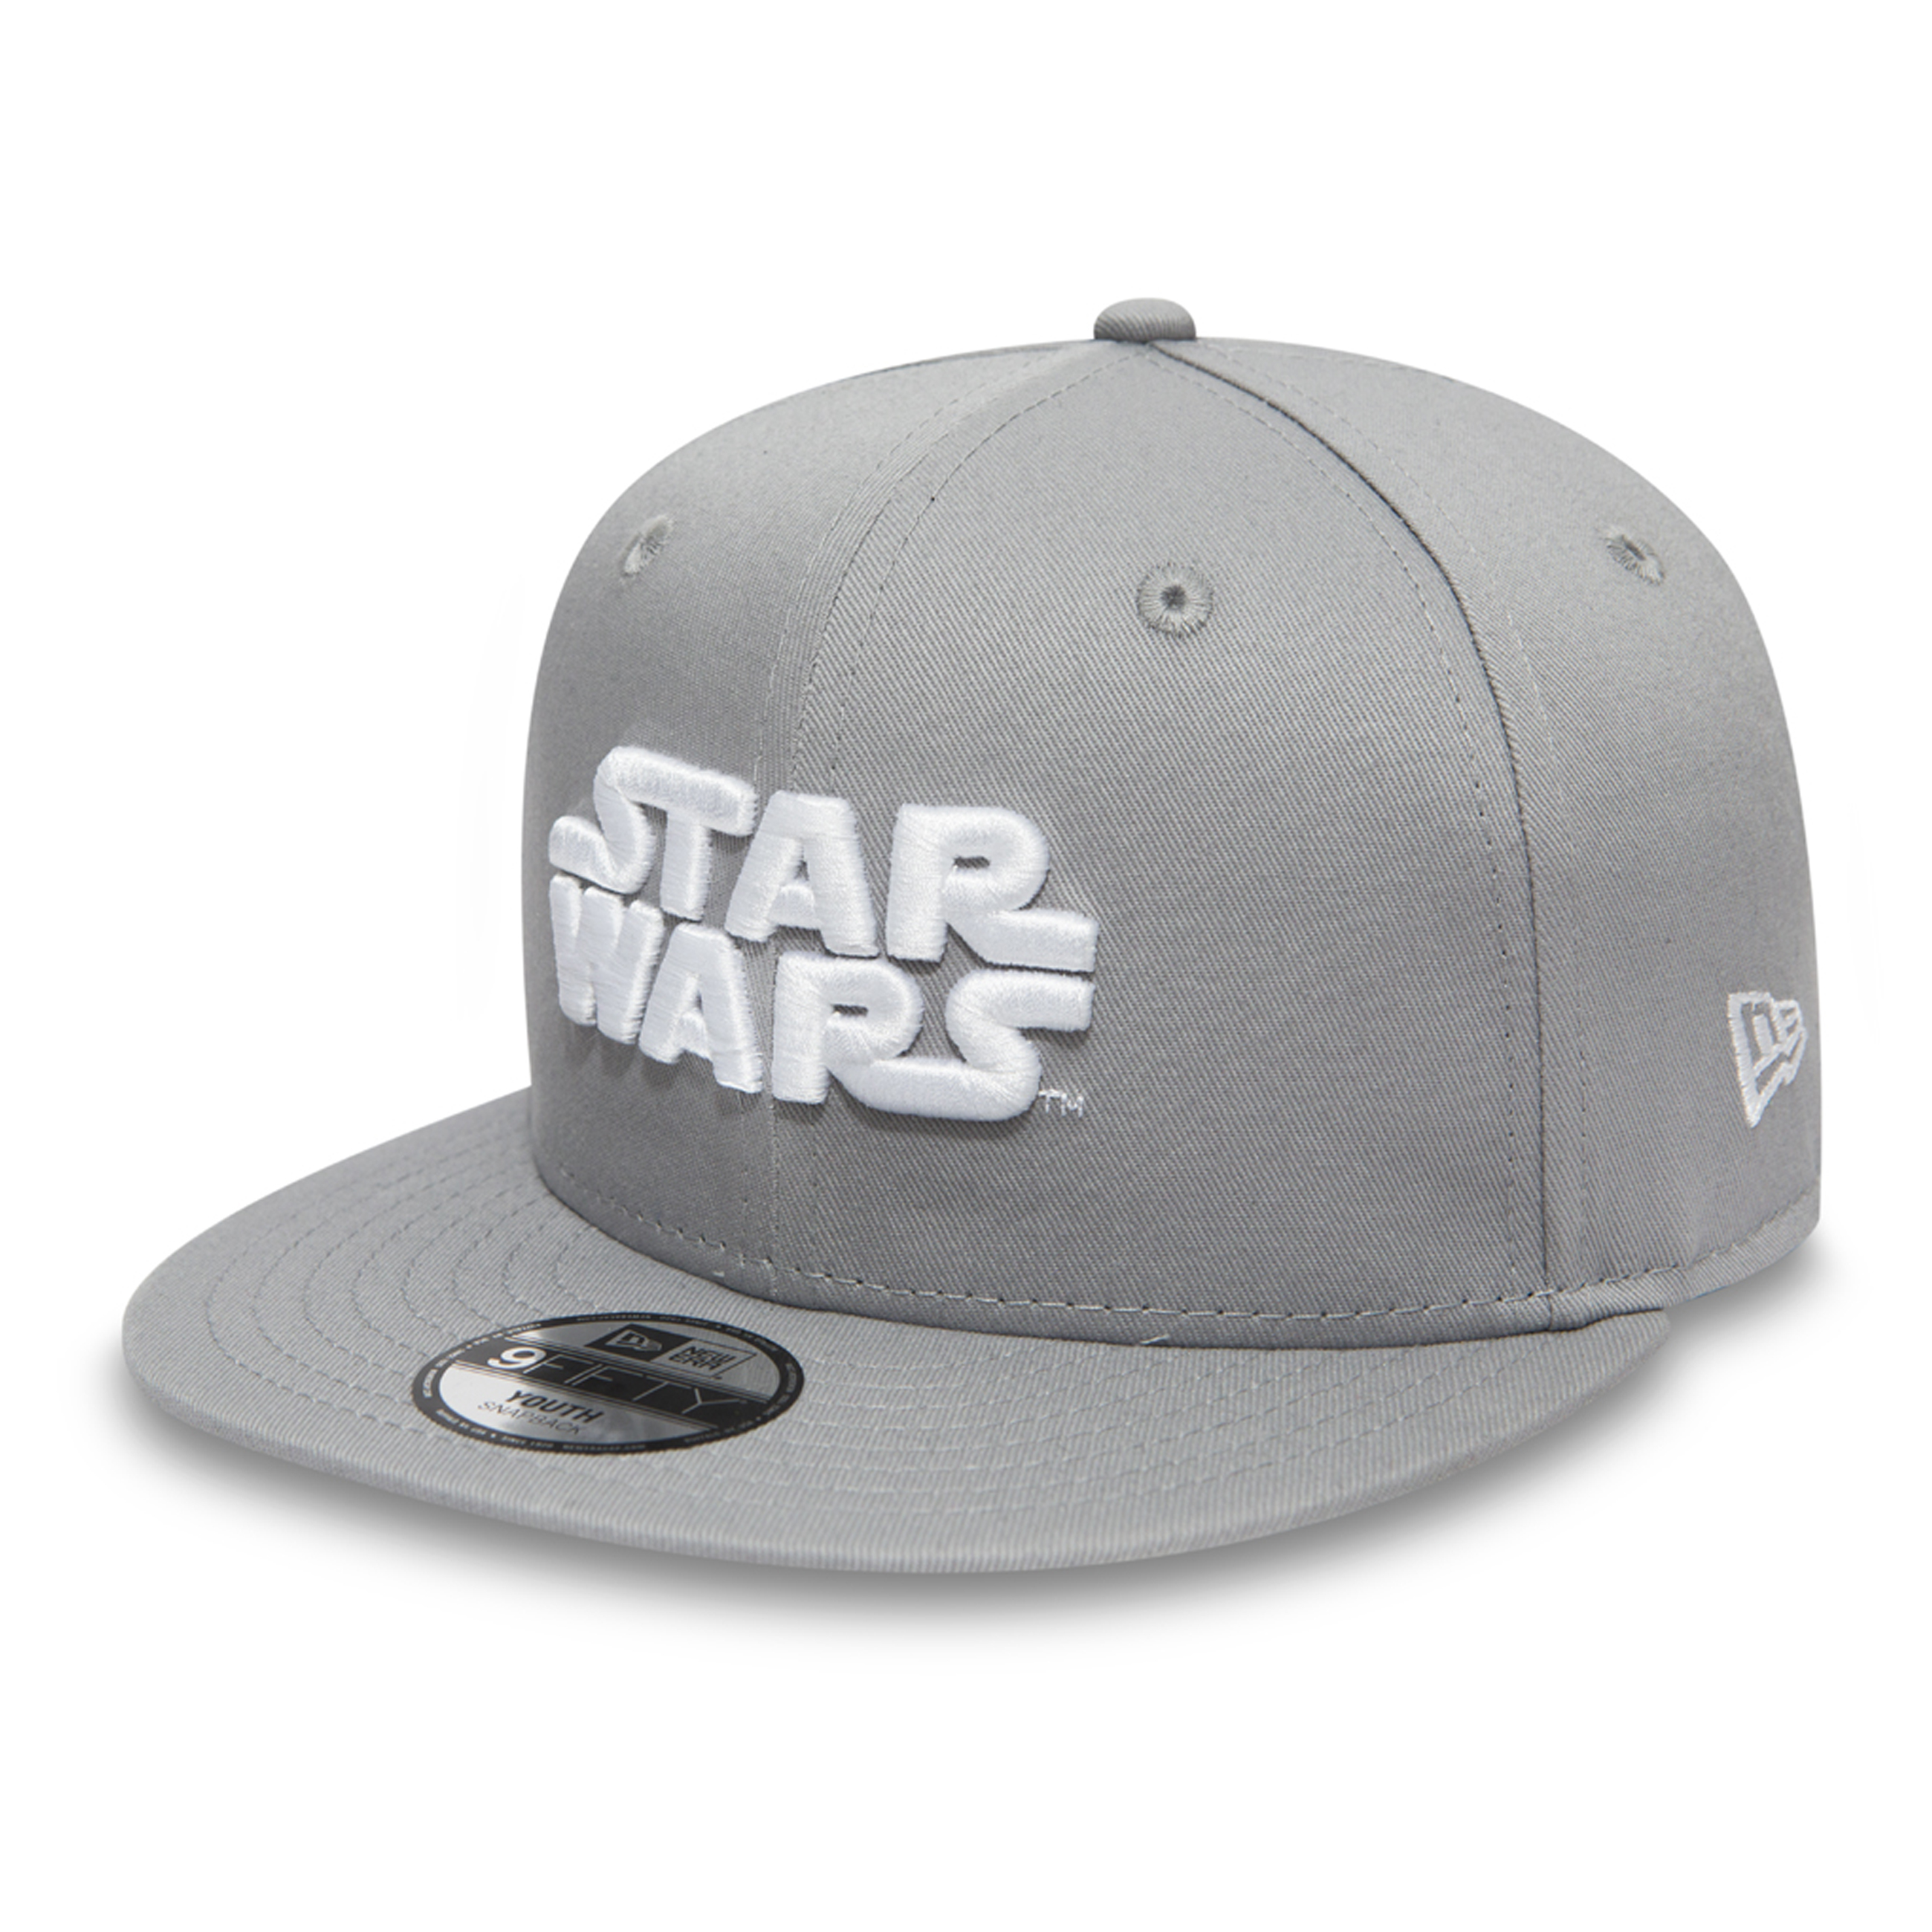 New Era Star Wars Essential Storm Trooper 9fifty 950 Youth Berretto Da Baseball Clothing, Shoes & Accessories Other Kids' Clothing & Accs